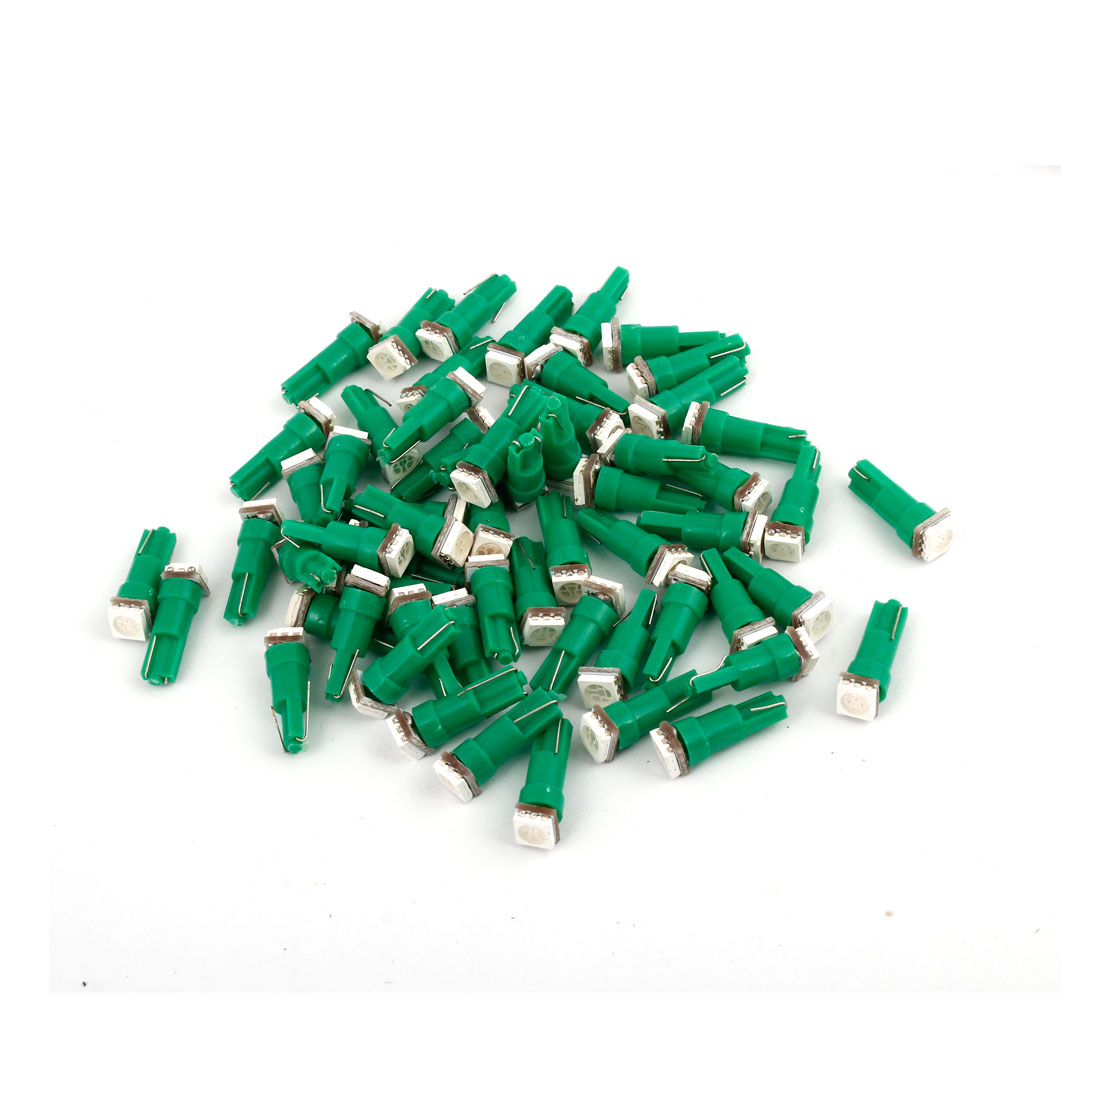 60 Pcs T5 5050 SMD LED Dashboard Gauge Light Bulbs Green 12V for Car Vehicle internal